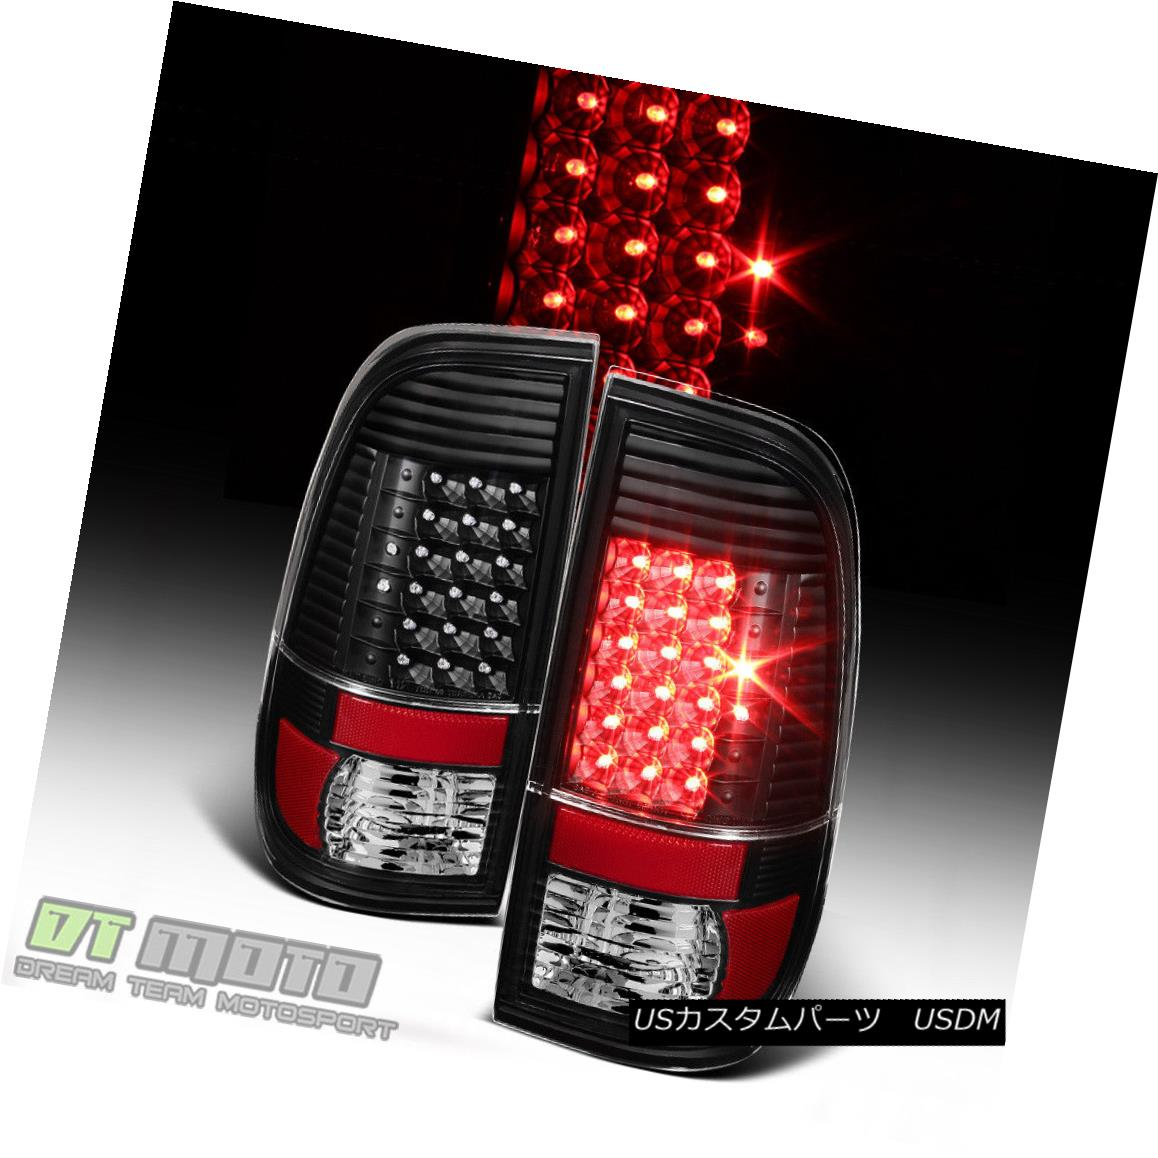 テールライト Black 2008-2016 Ford F250 F350 F450 SuperDuty LED Tail Lights Brake Lamps ブラック2008-2016 Ford F250 F350 F450 SuperDuty LEDテールライトブレーキランプ